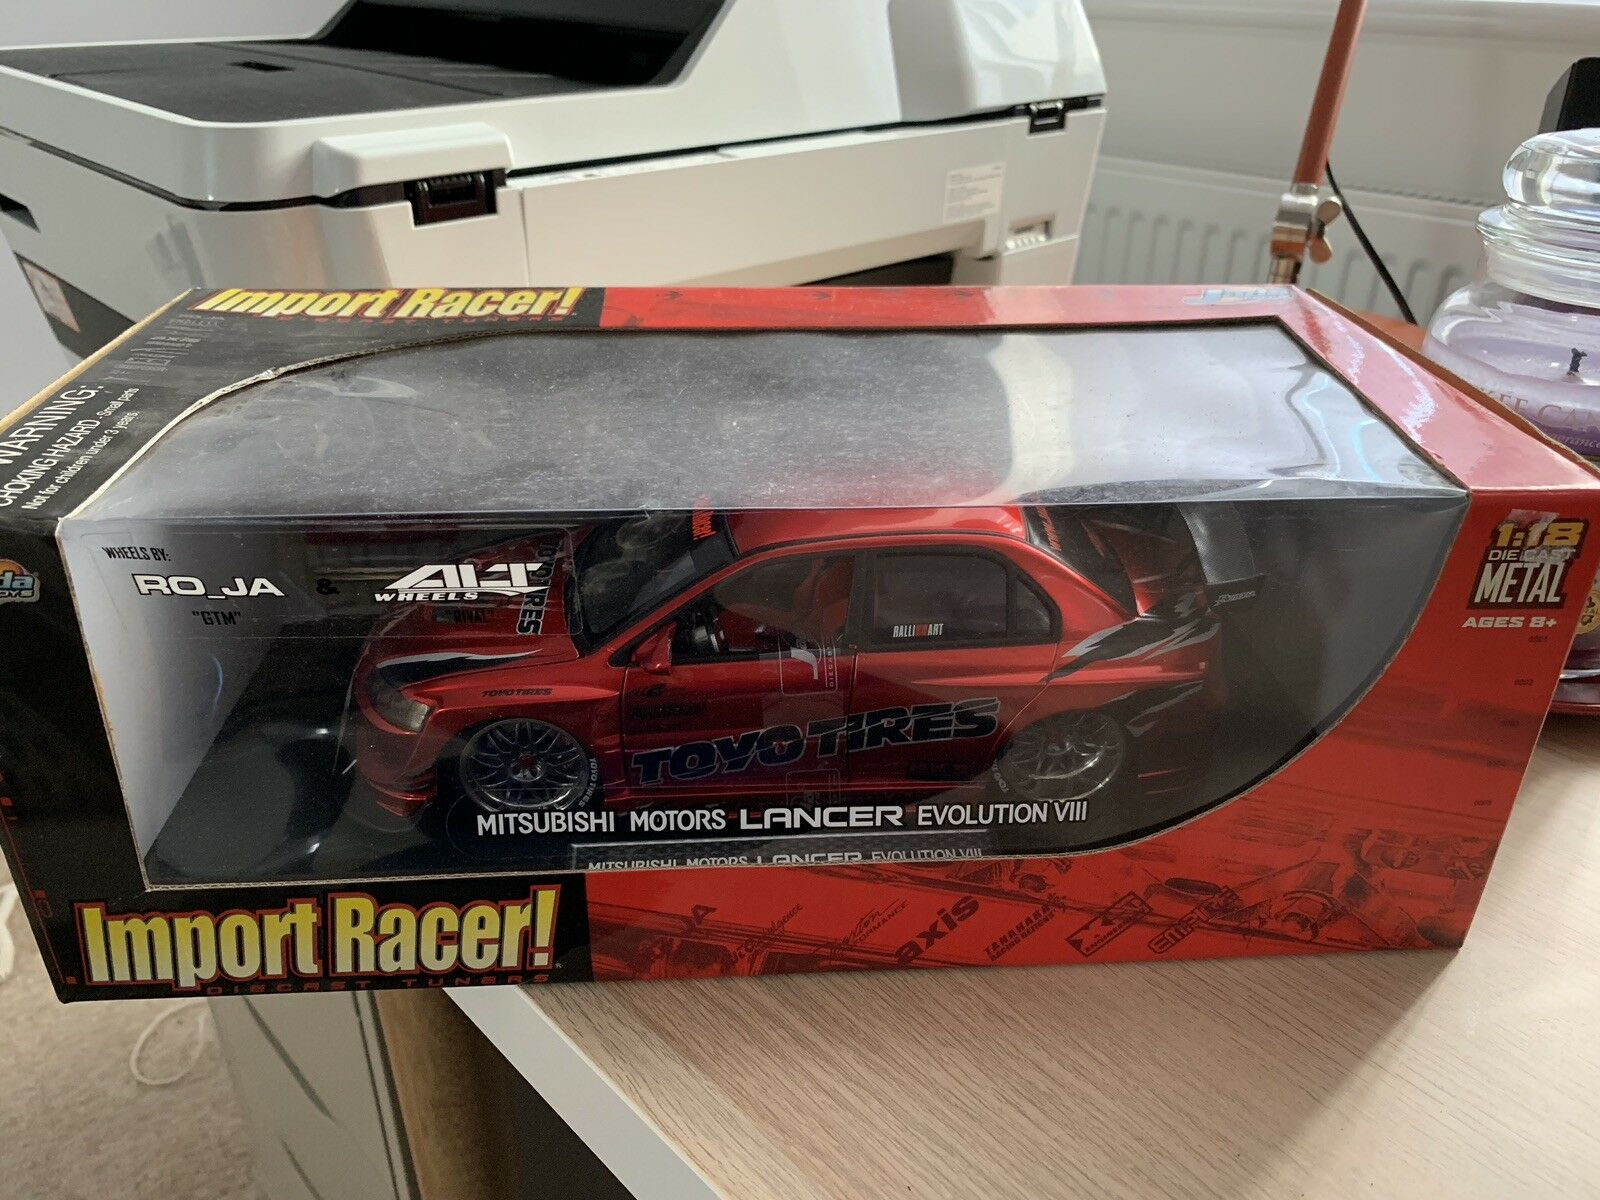 Import Racer Mitsubishi Lancer Evo VIII Toyo Tyres 1 18 Scale Diecast Car